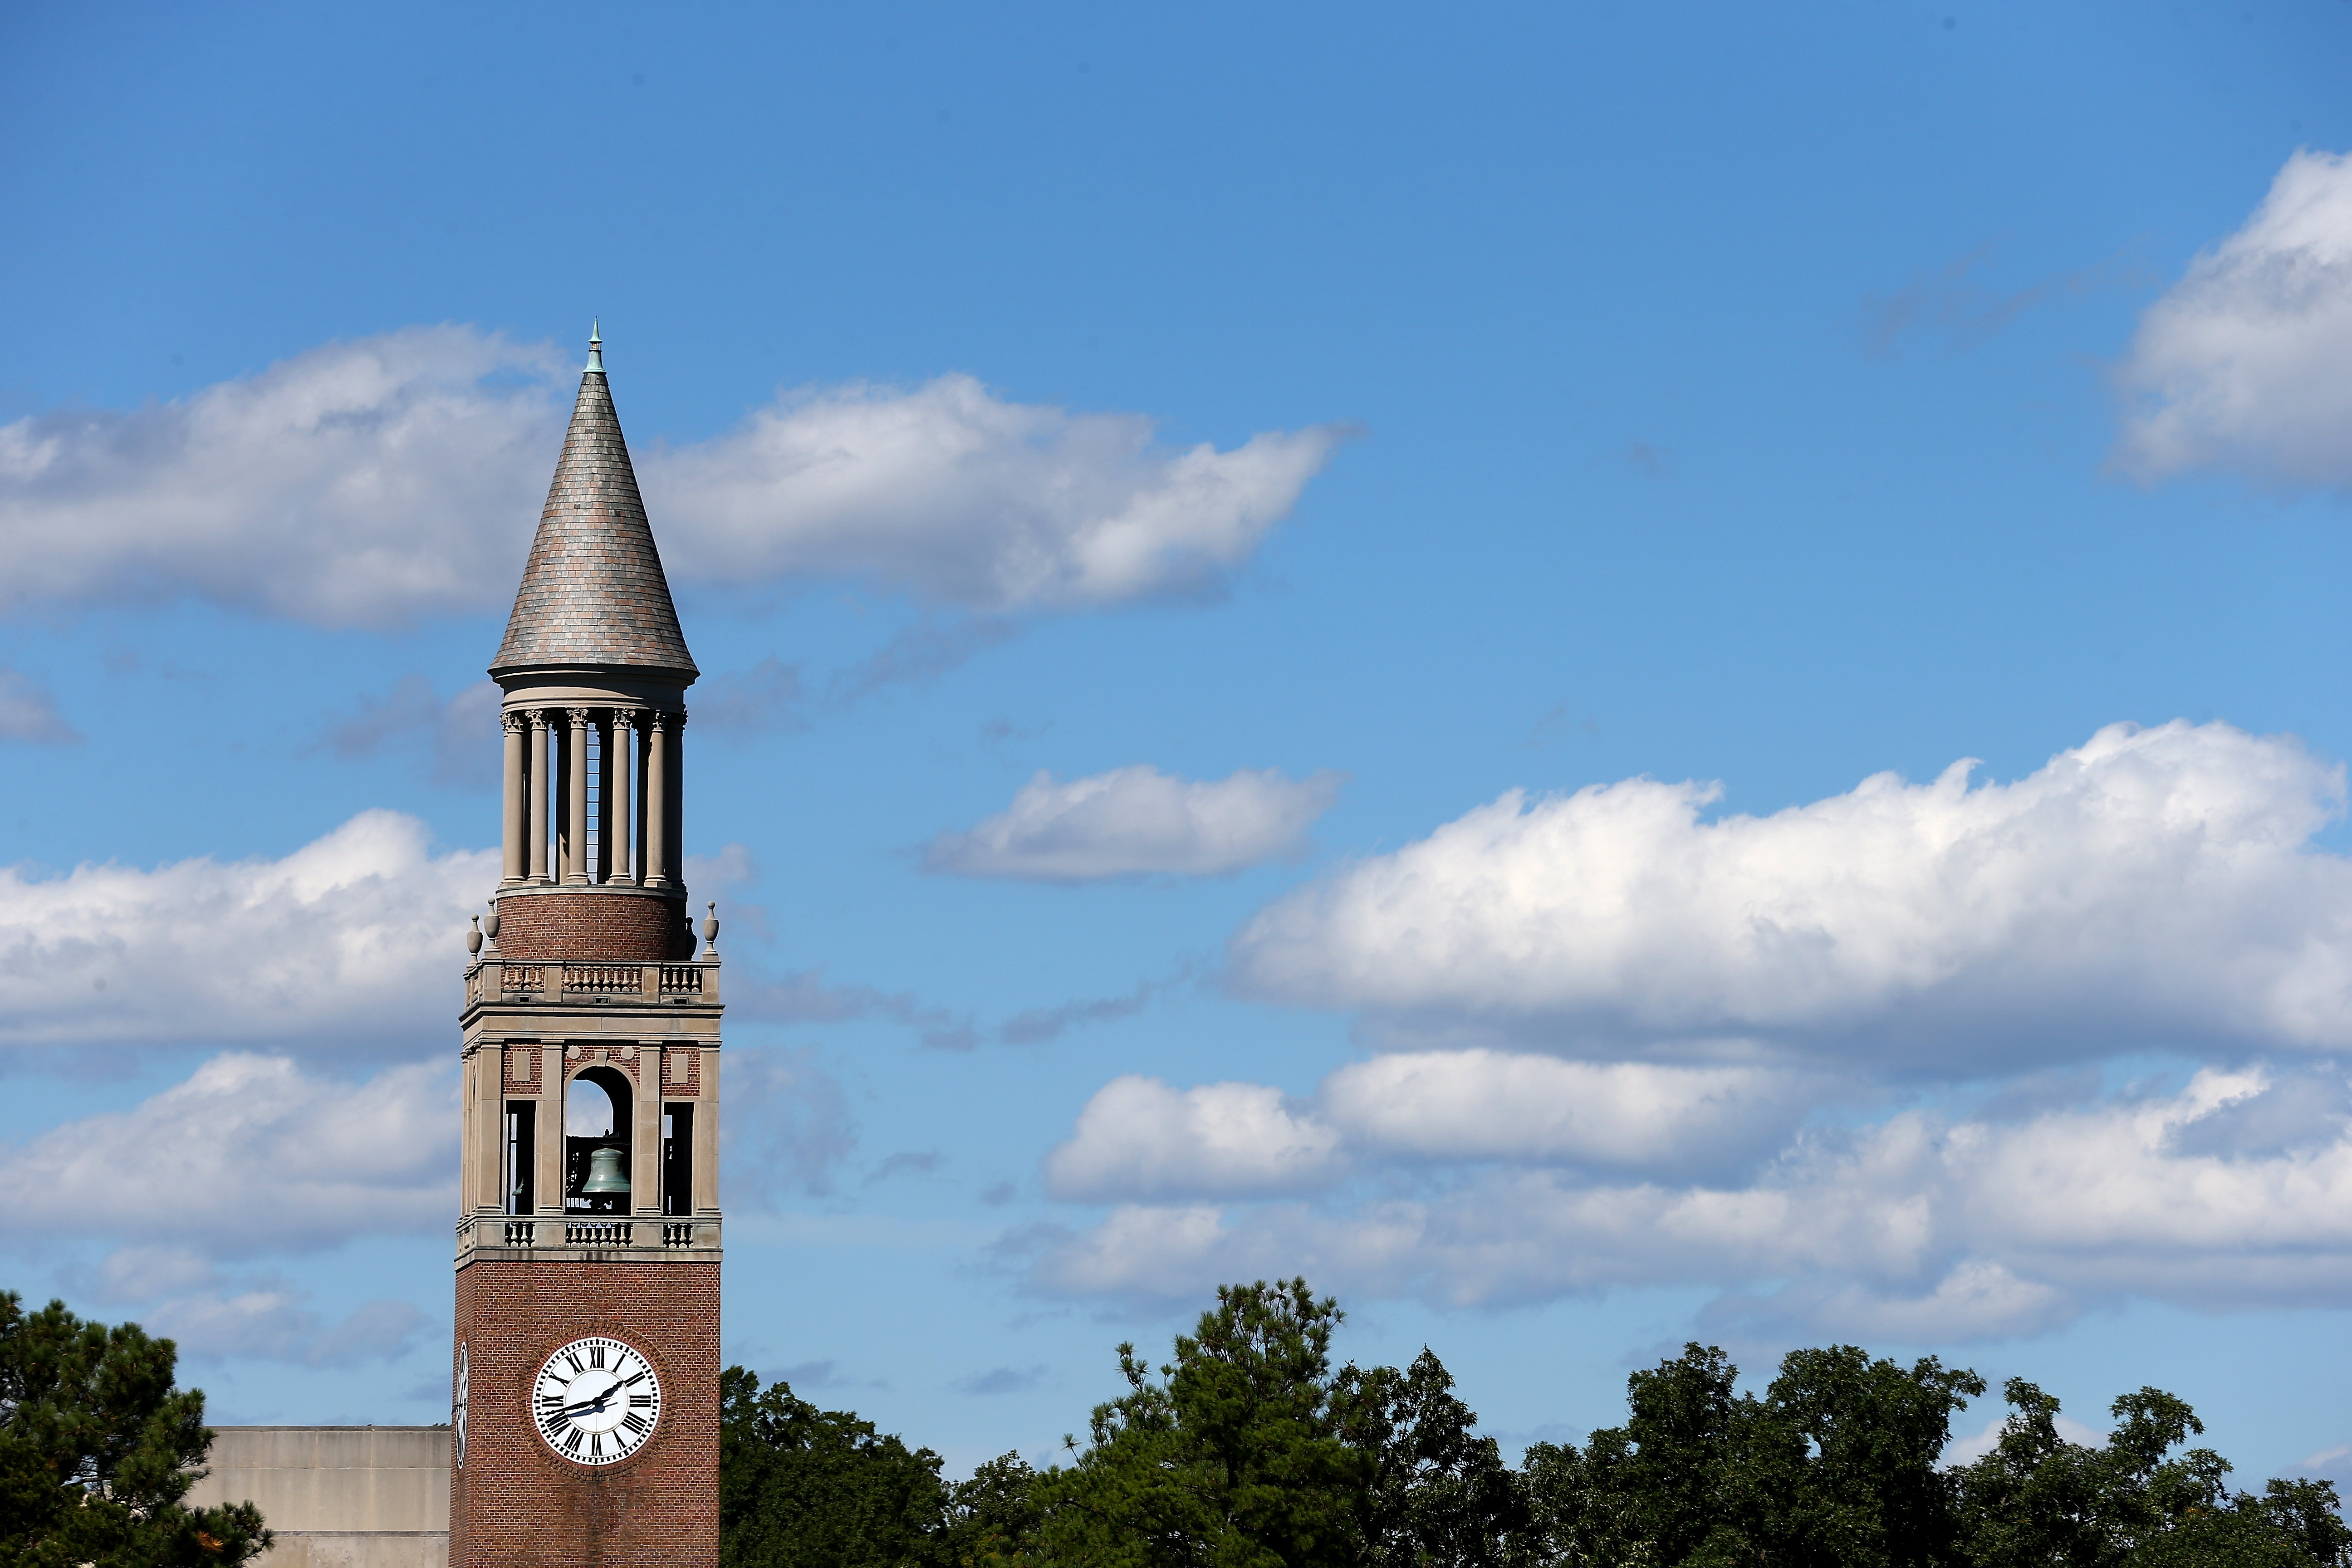 A general view of the Bell Tower on the campus of the North Carolina Tar Heels before their game against the Virginia Tech Hokies at Kenan Stadium on Oct. 4, 2014 in Chapel Hill, N.C.